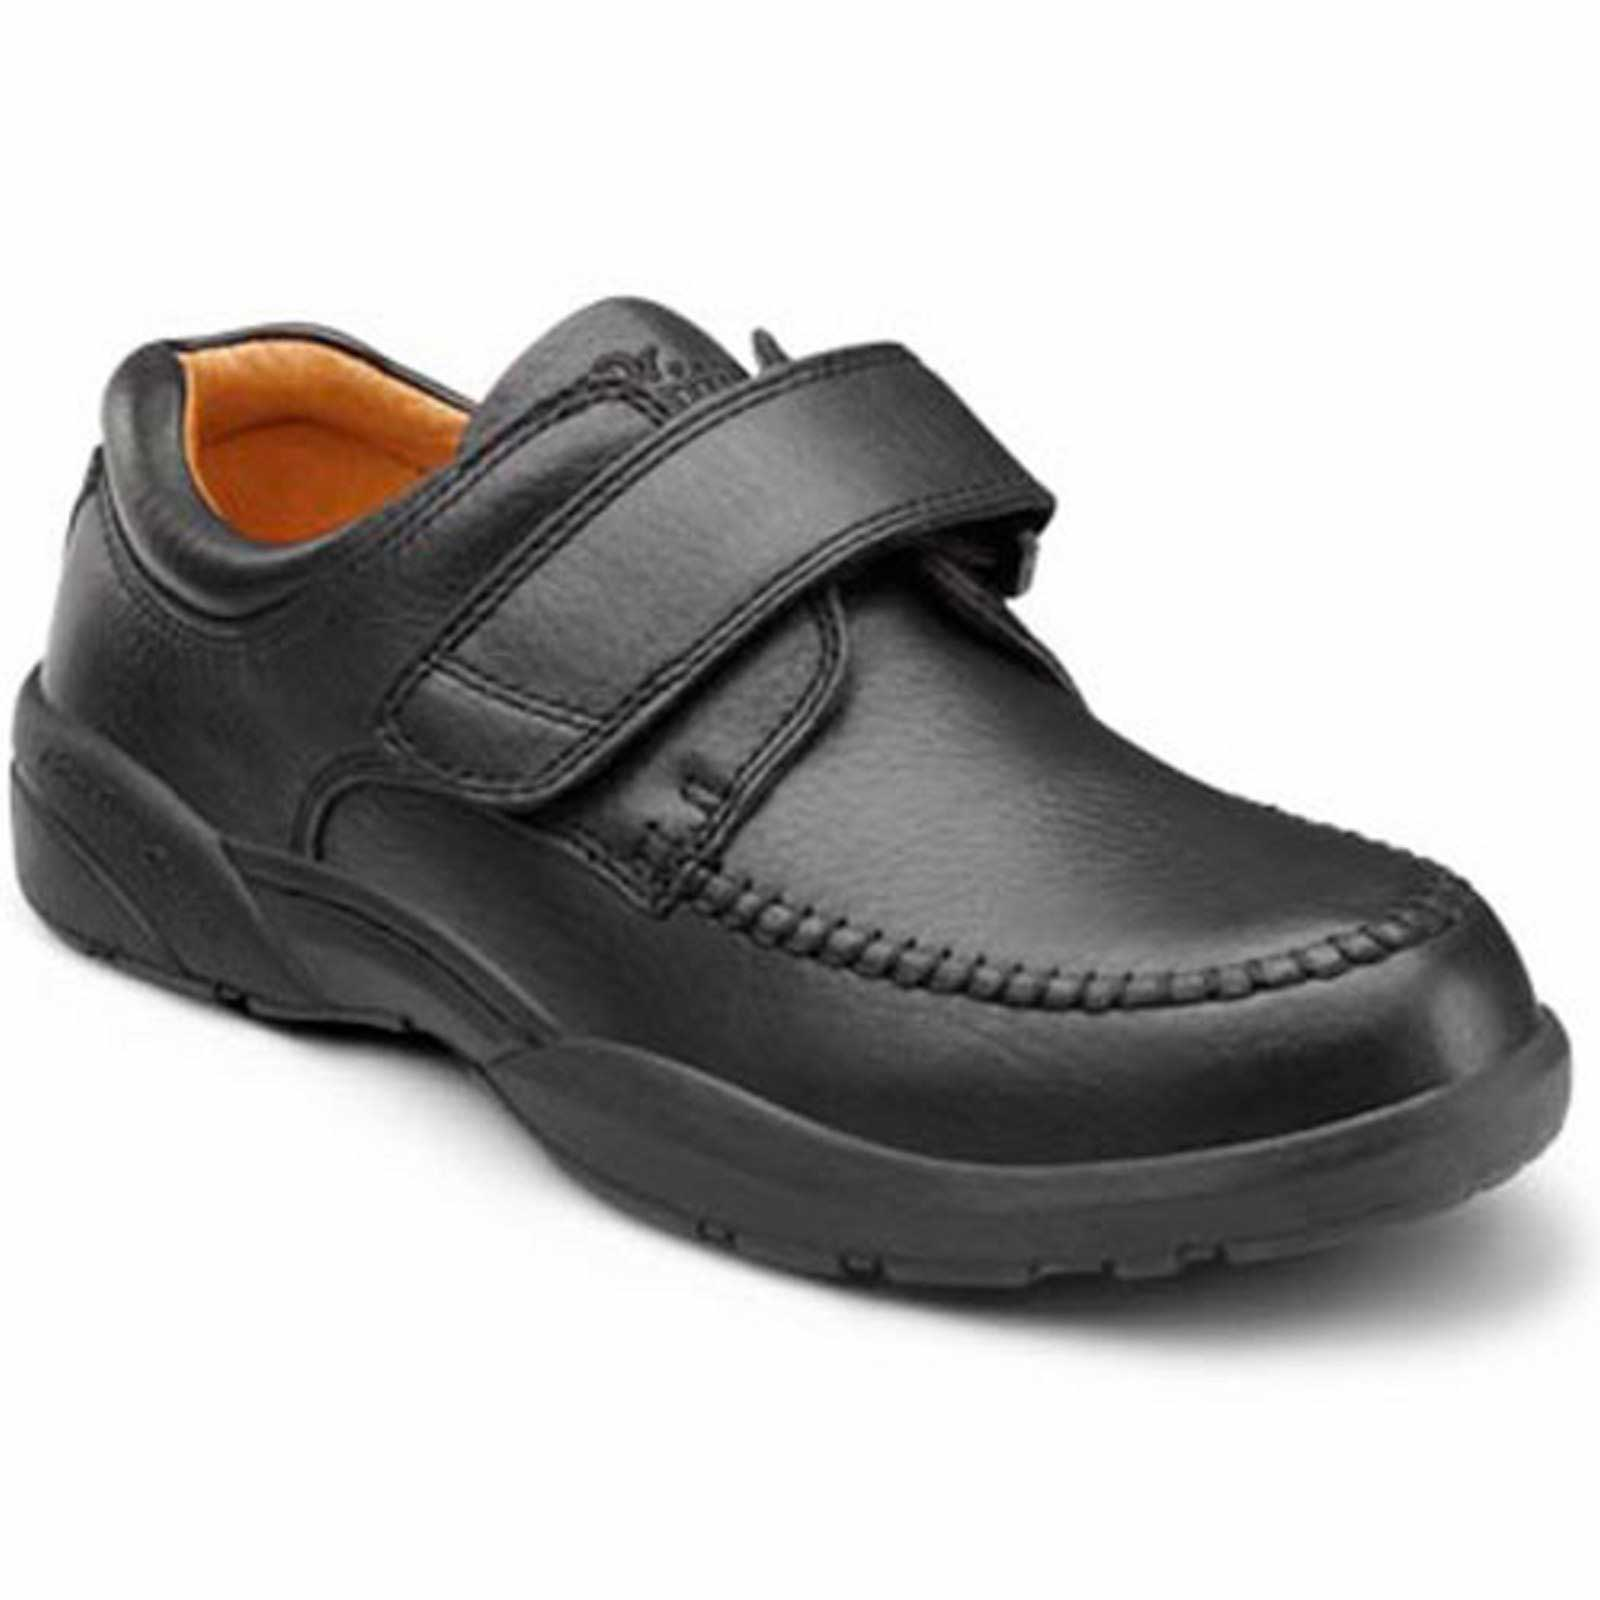 Dr Comfort Diabetic Shoes Reviews